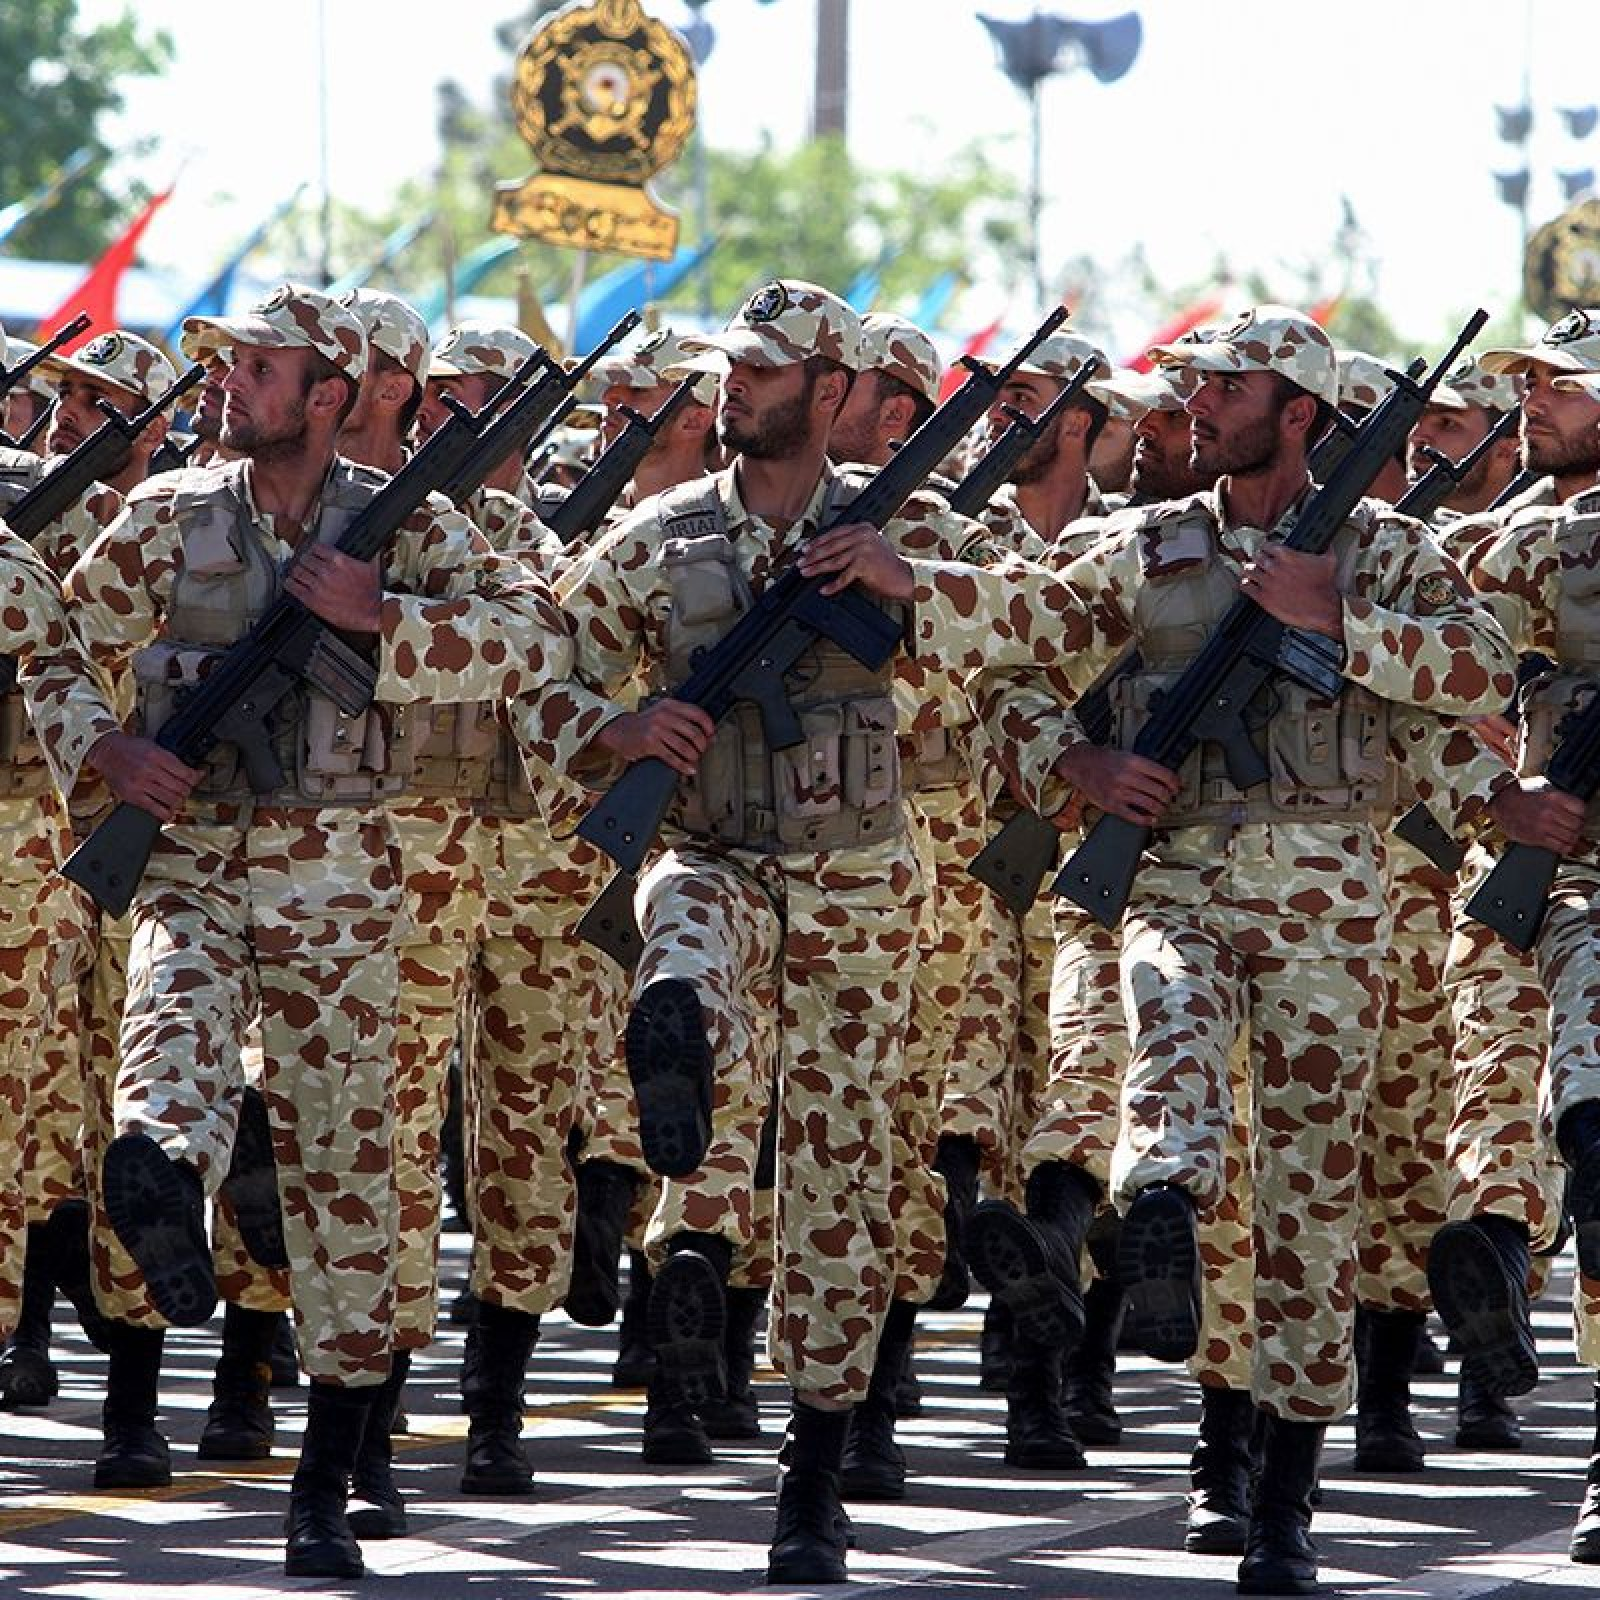 Saudi Arabia Vs Iran: Which Country Has the Strongest Military Force?